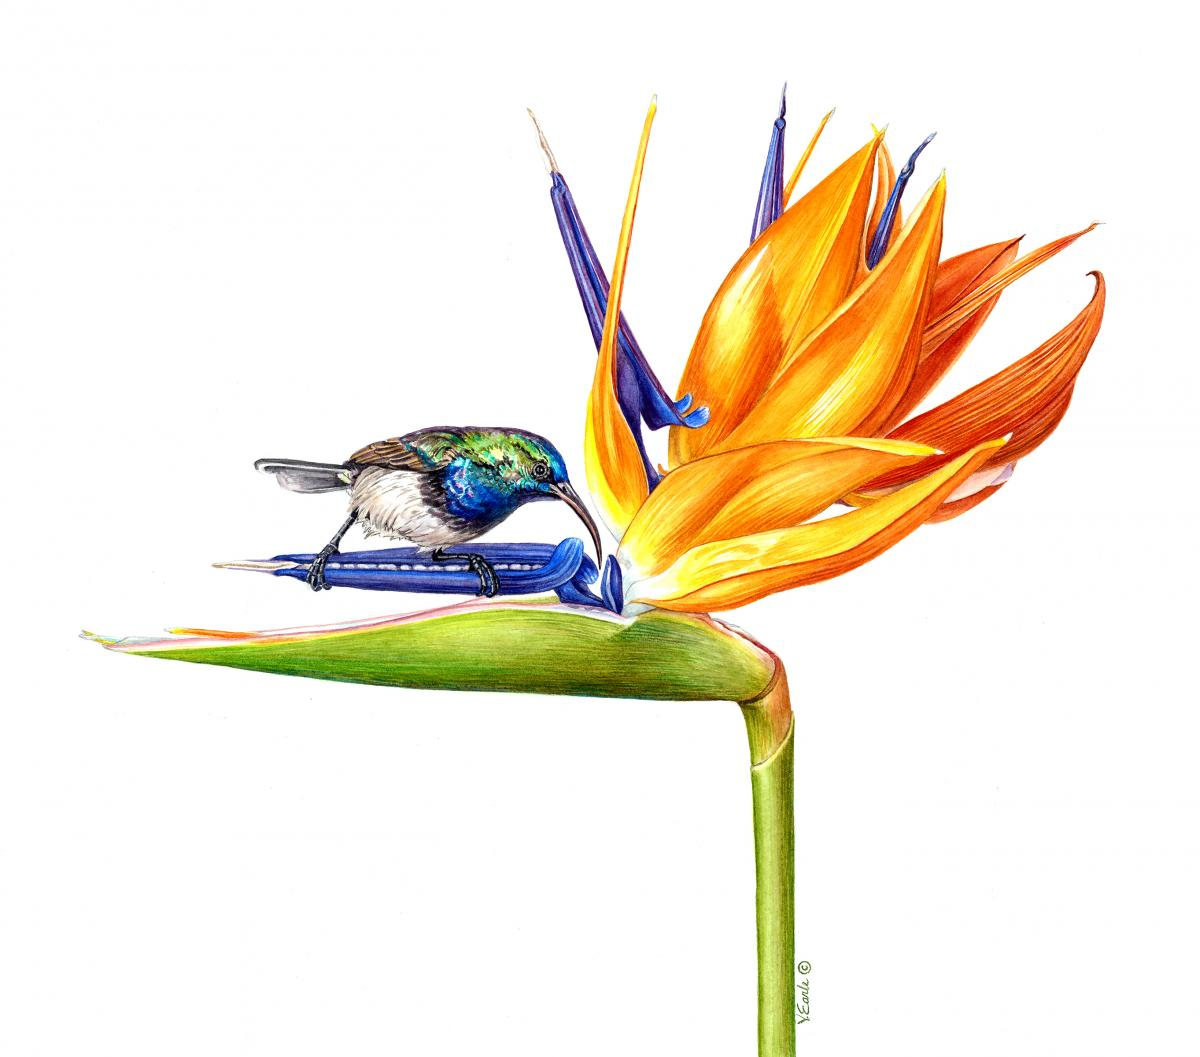 Bird of Paradise and Sunbird | Wallhanging by Vicky Earle | Artists for Conservation 2018